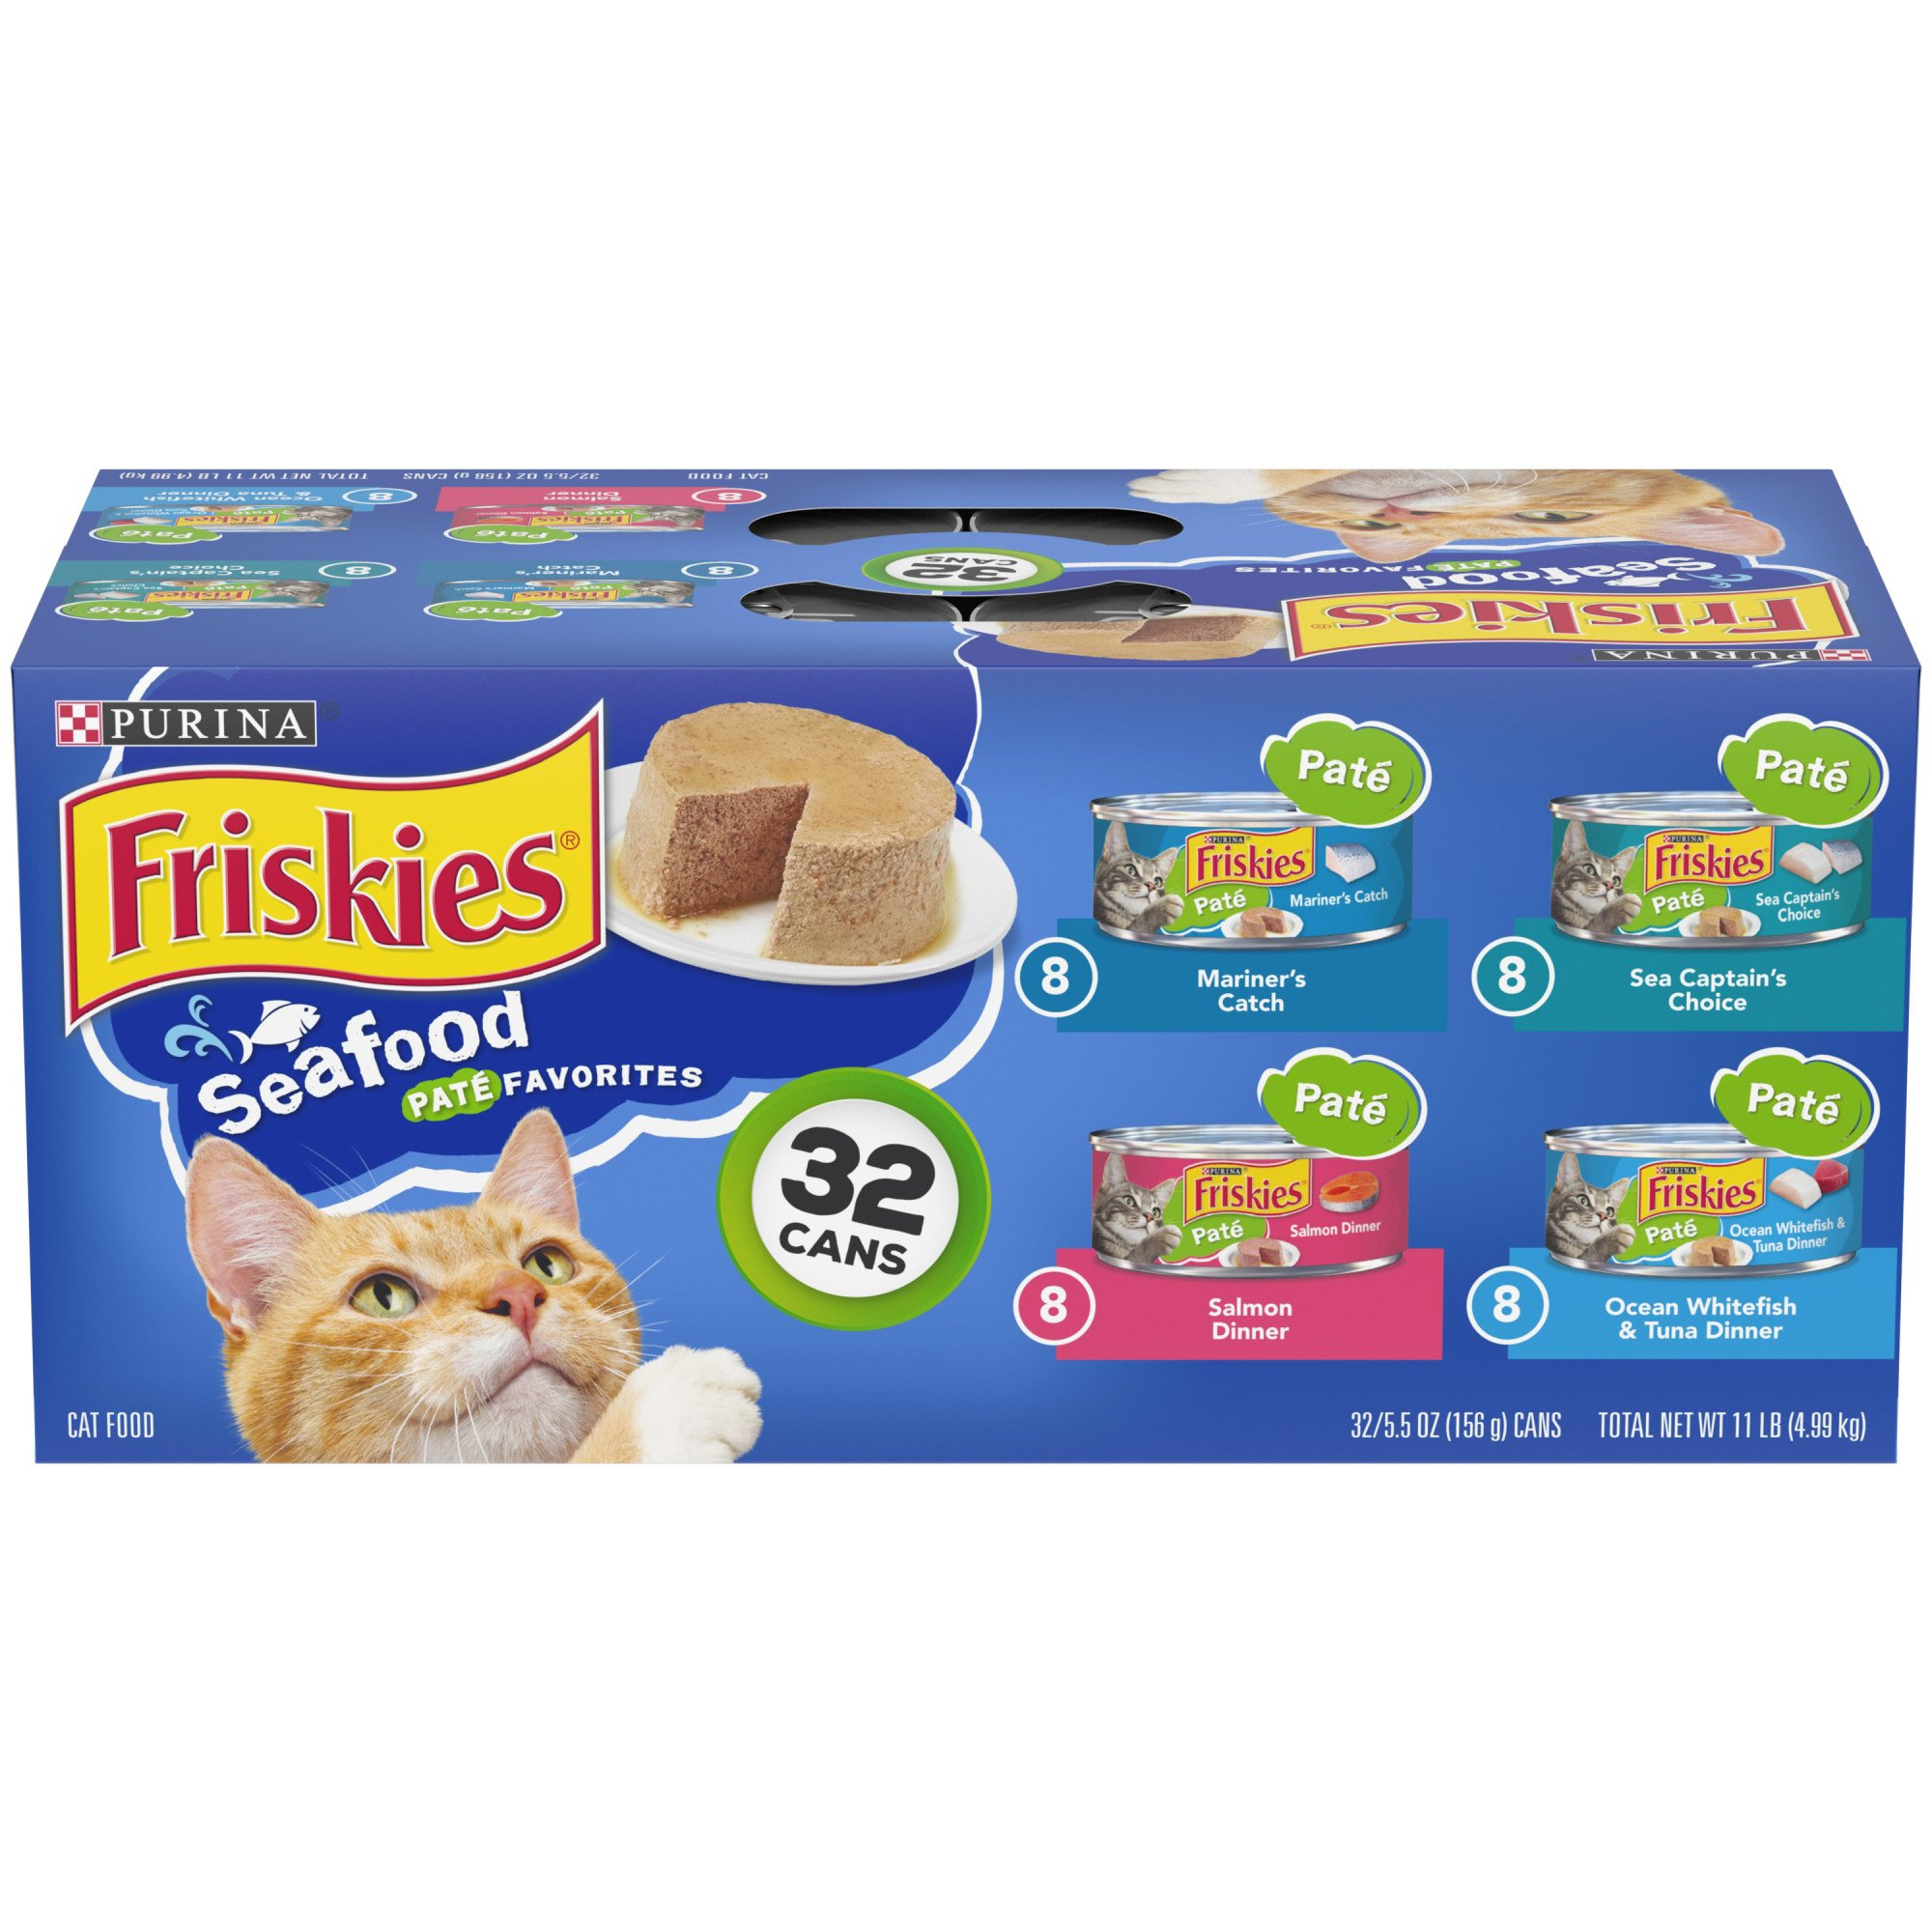 Purina Friskies Pate Seafood Favorites Wet Cat Food Variety Pack, 5.5 oz., Count of 32